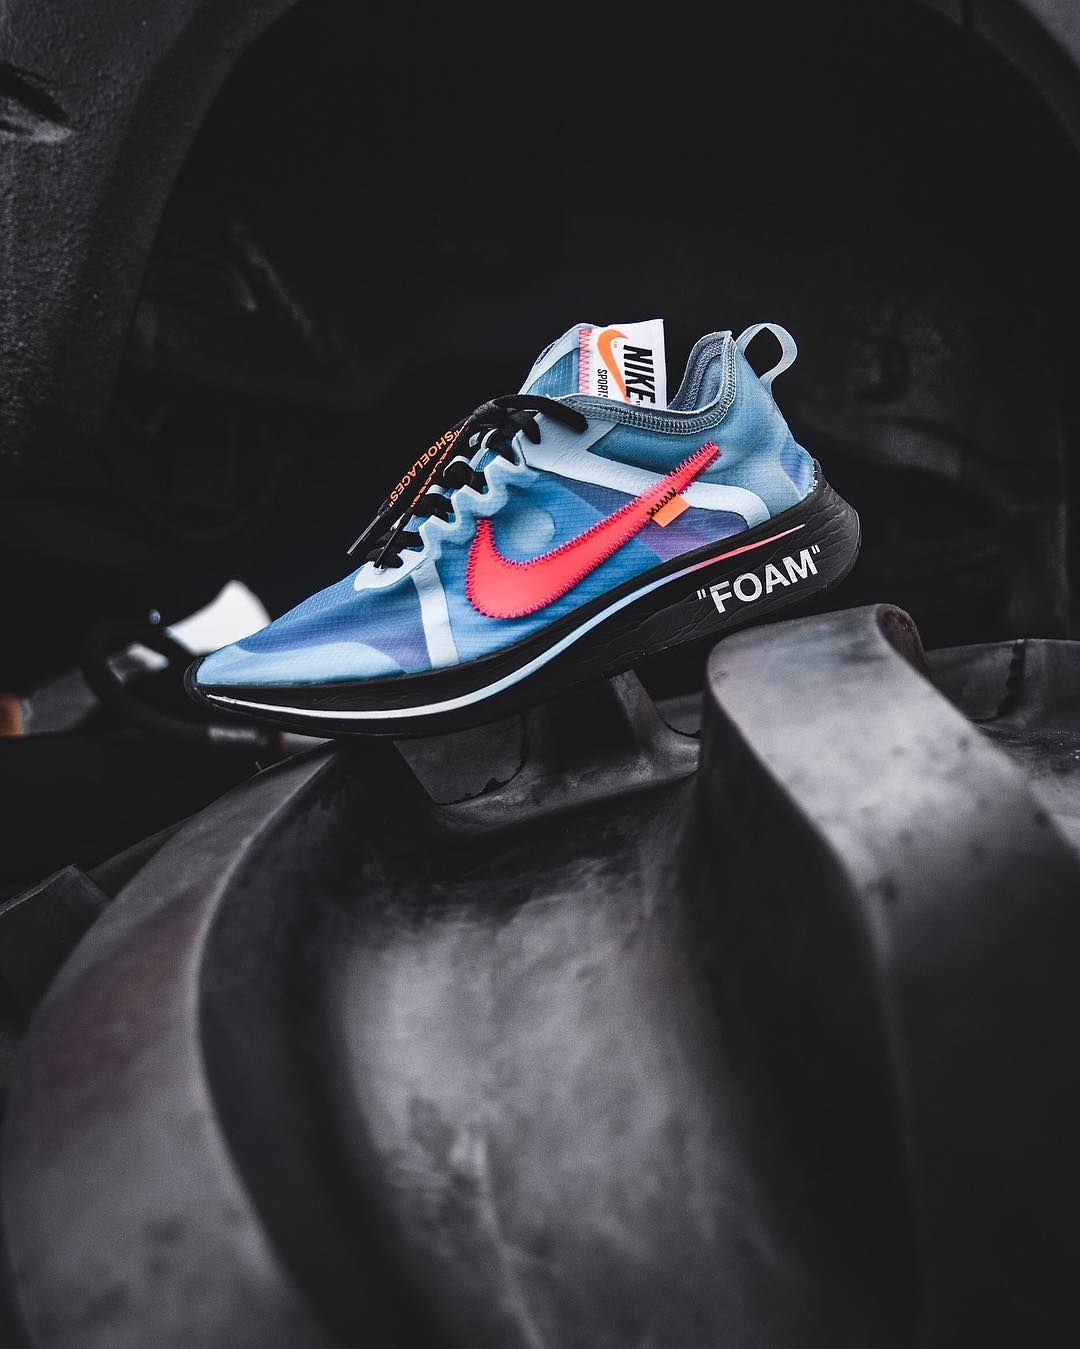 3df38070ac3b The Off-White x Nike Zoom Fly SP Surfaces In A  Blue  Colourway ...